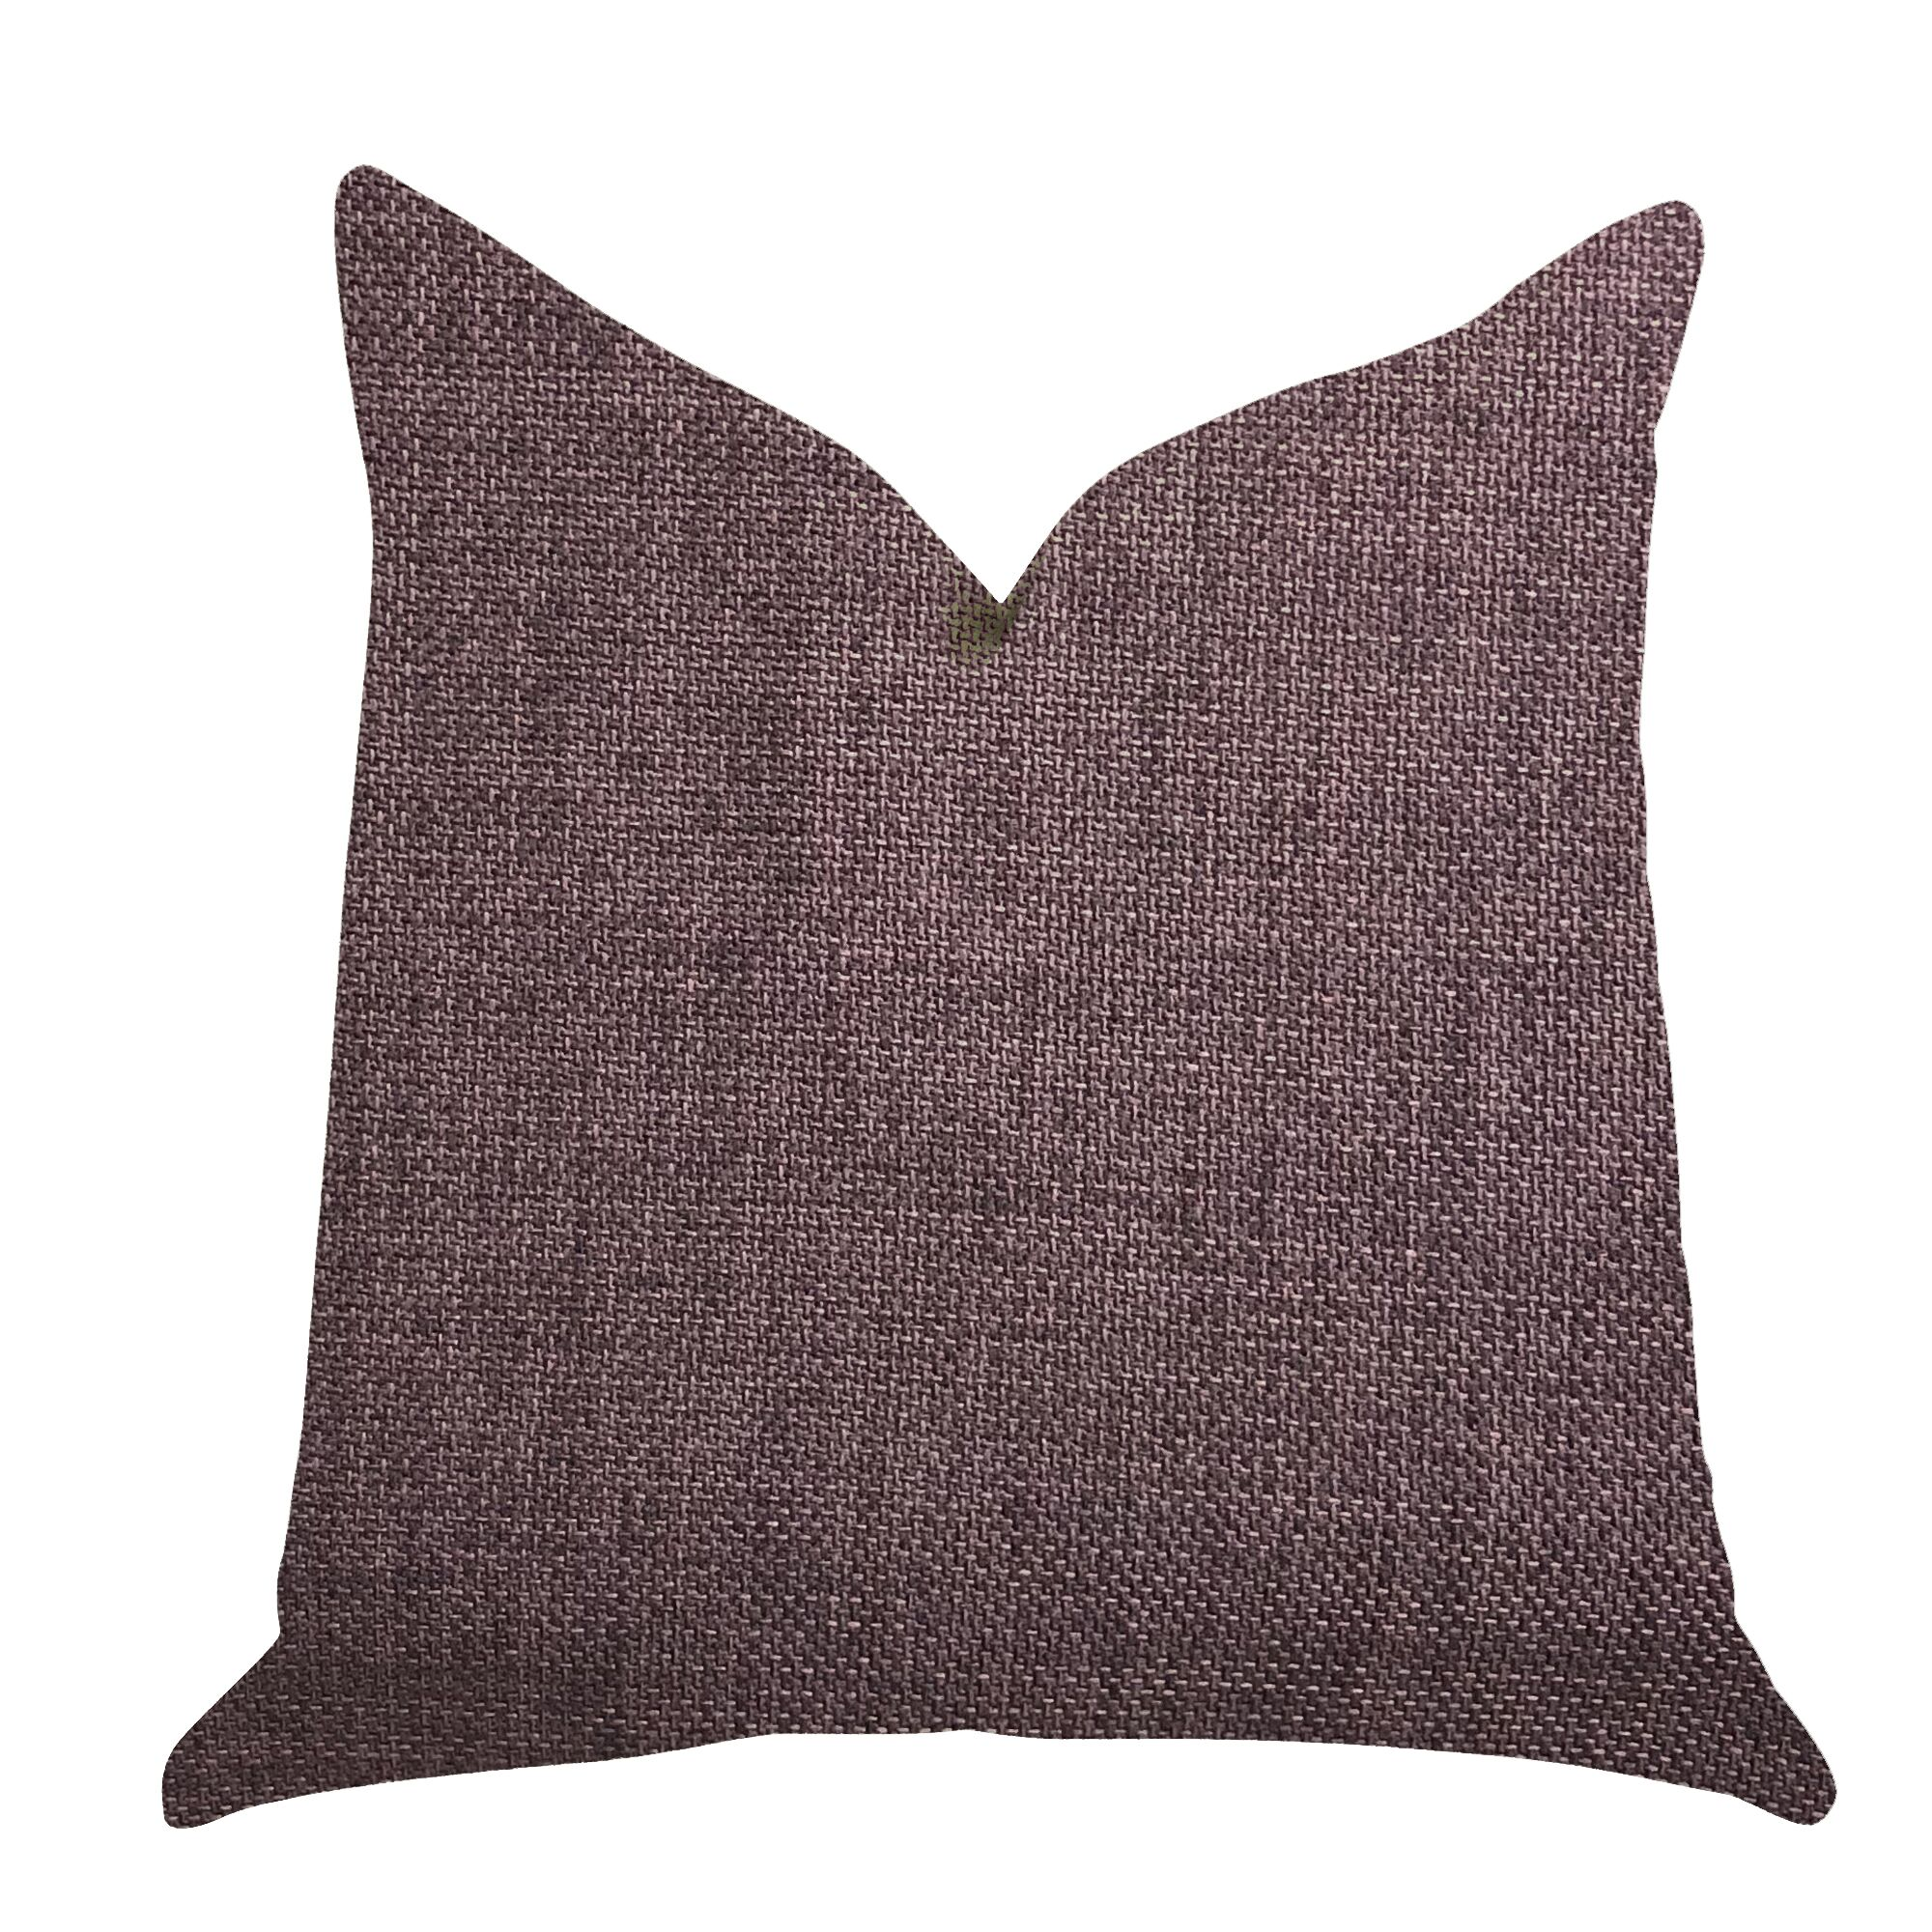 Fuqua Luxury Pillow Size: 24